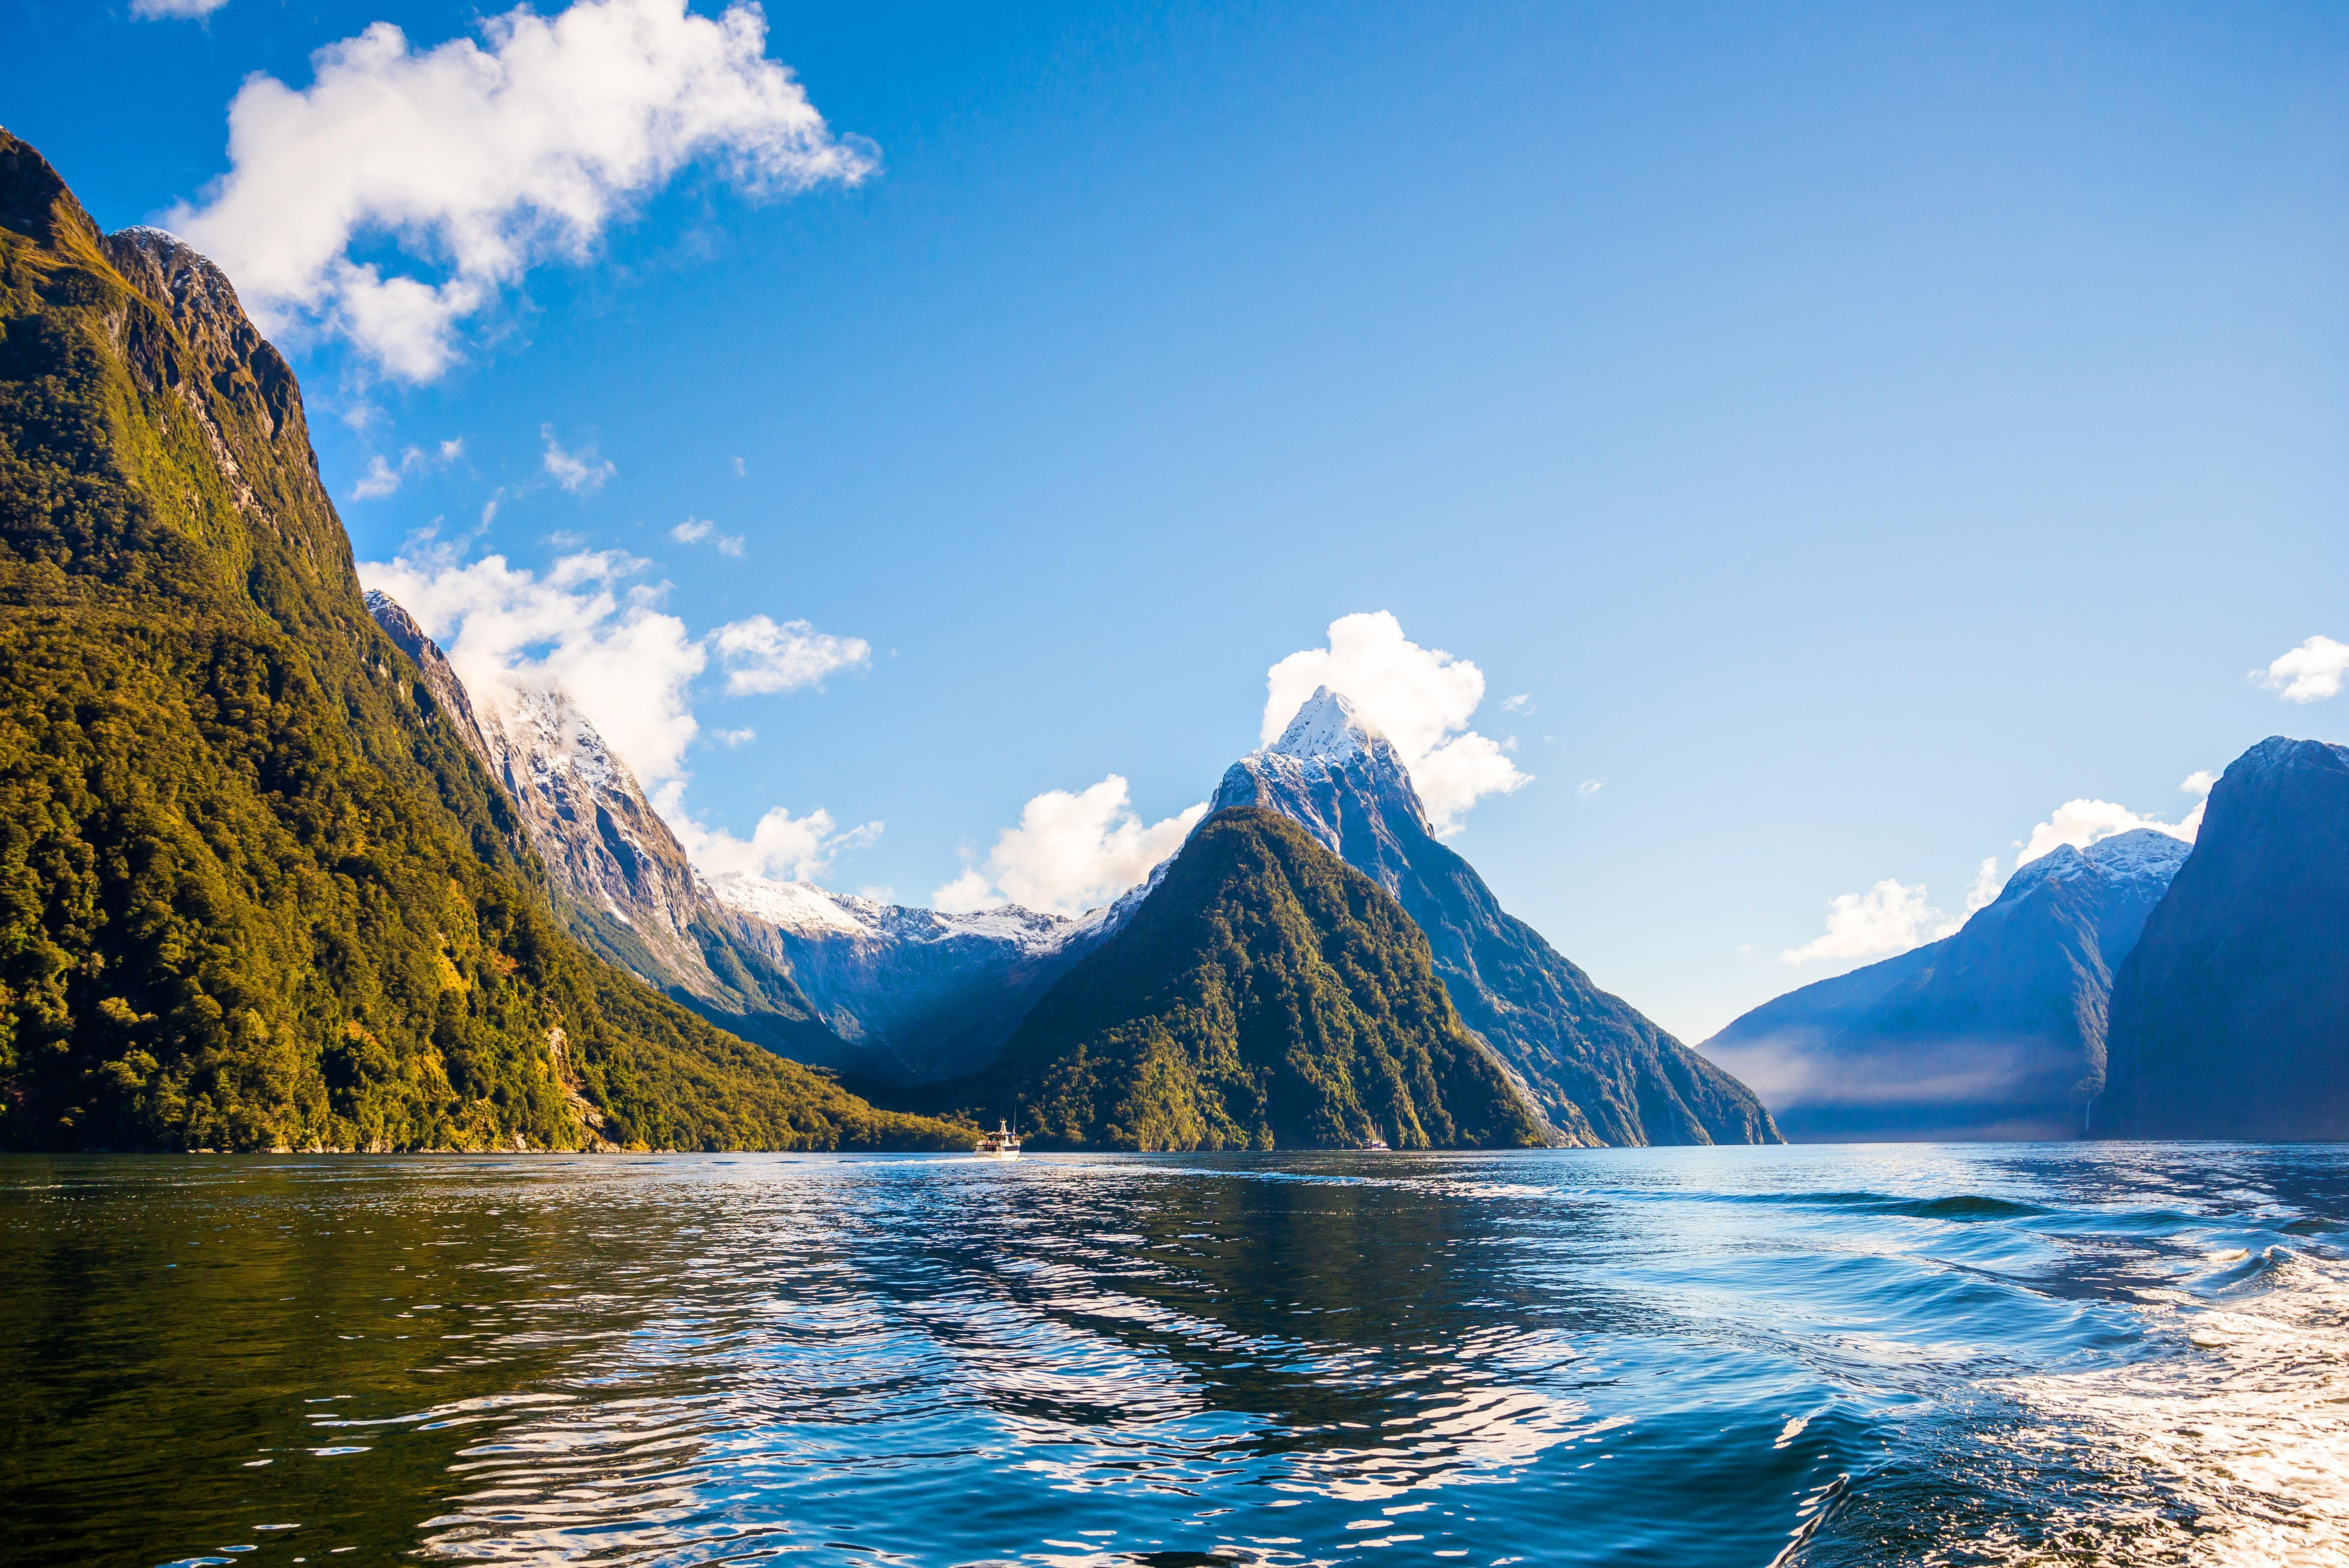 How to Spend 1 Day in Fiordland & Milford Sound